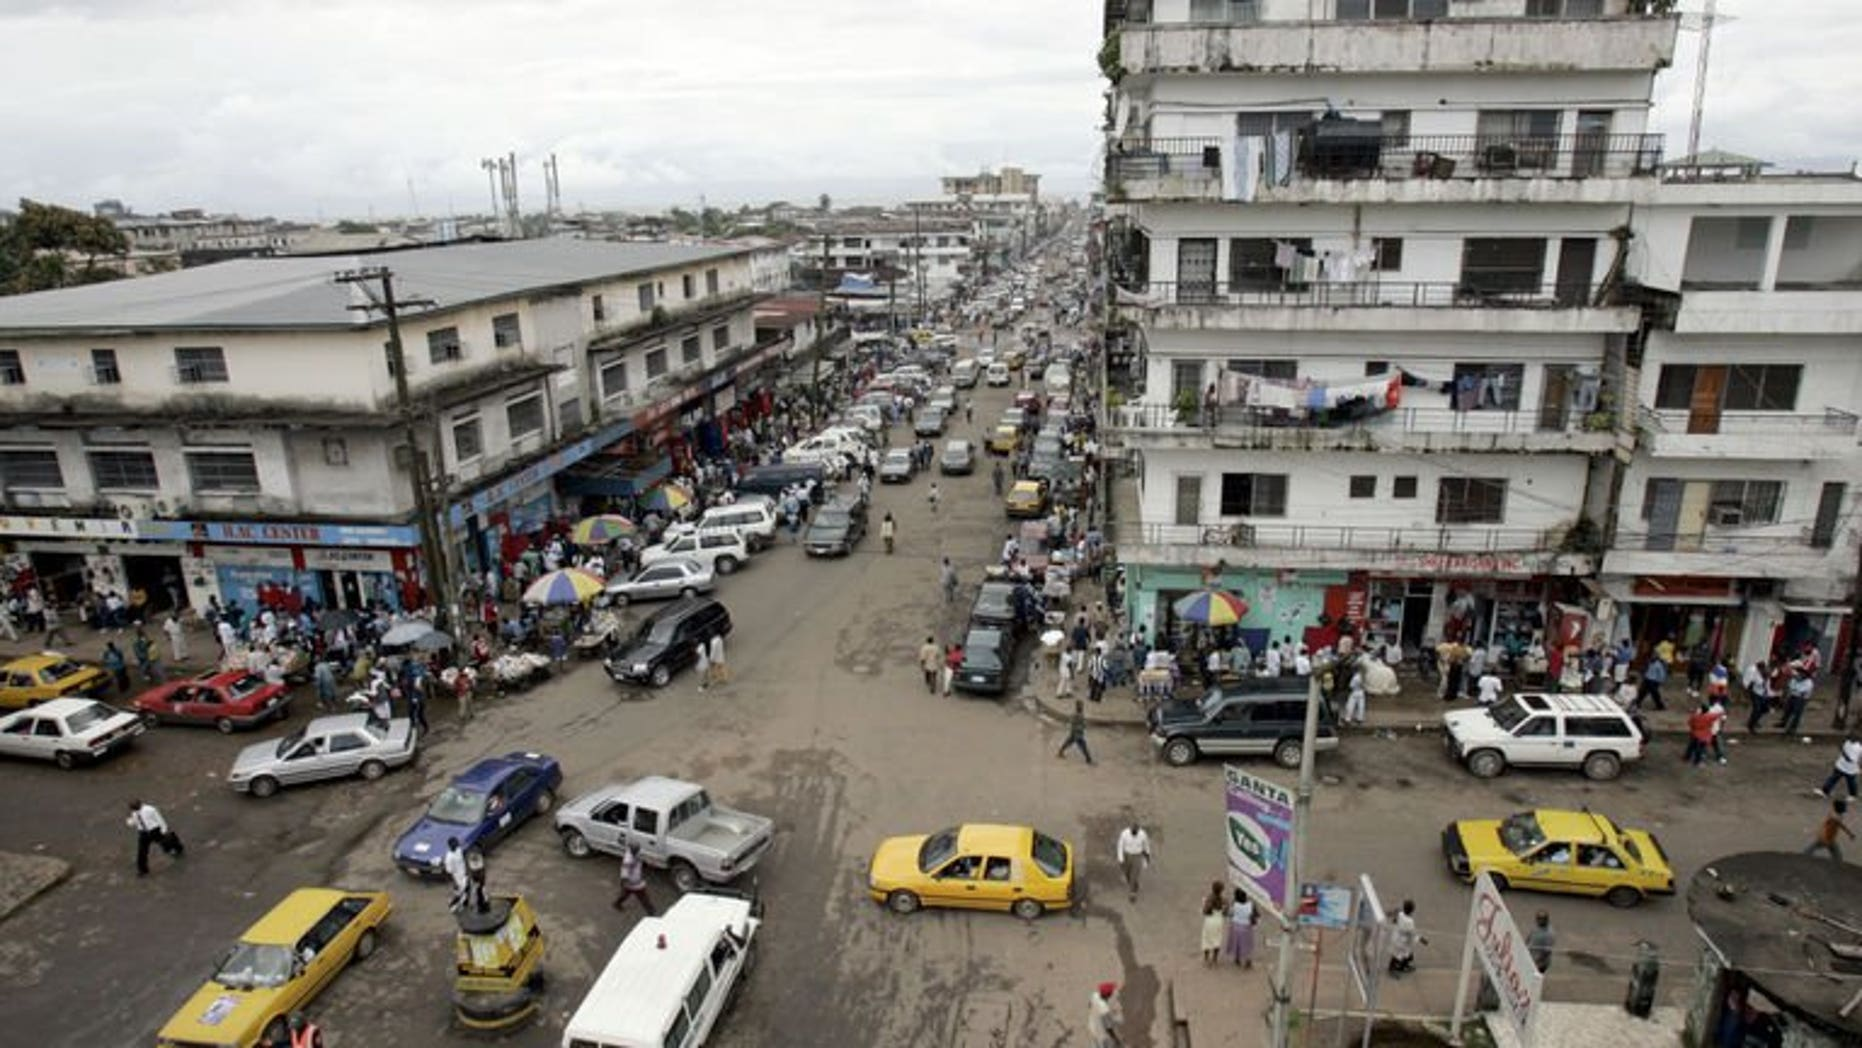 A view of the city centre of Monrovia on October 3, 2005. Two Liberian journalists appeared in court in Monrovia on Friday charged with criminal libel after accusing the government of corruption on national radio.